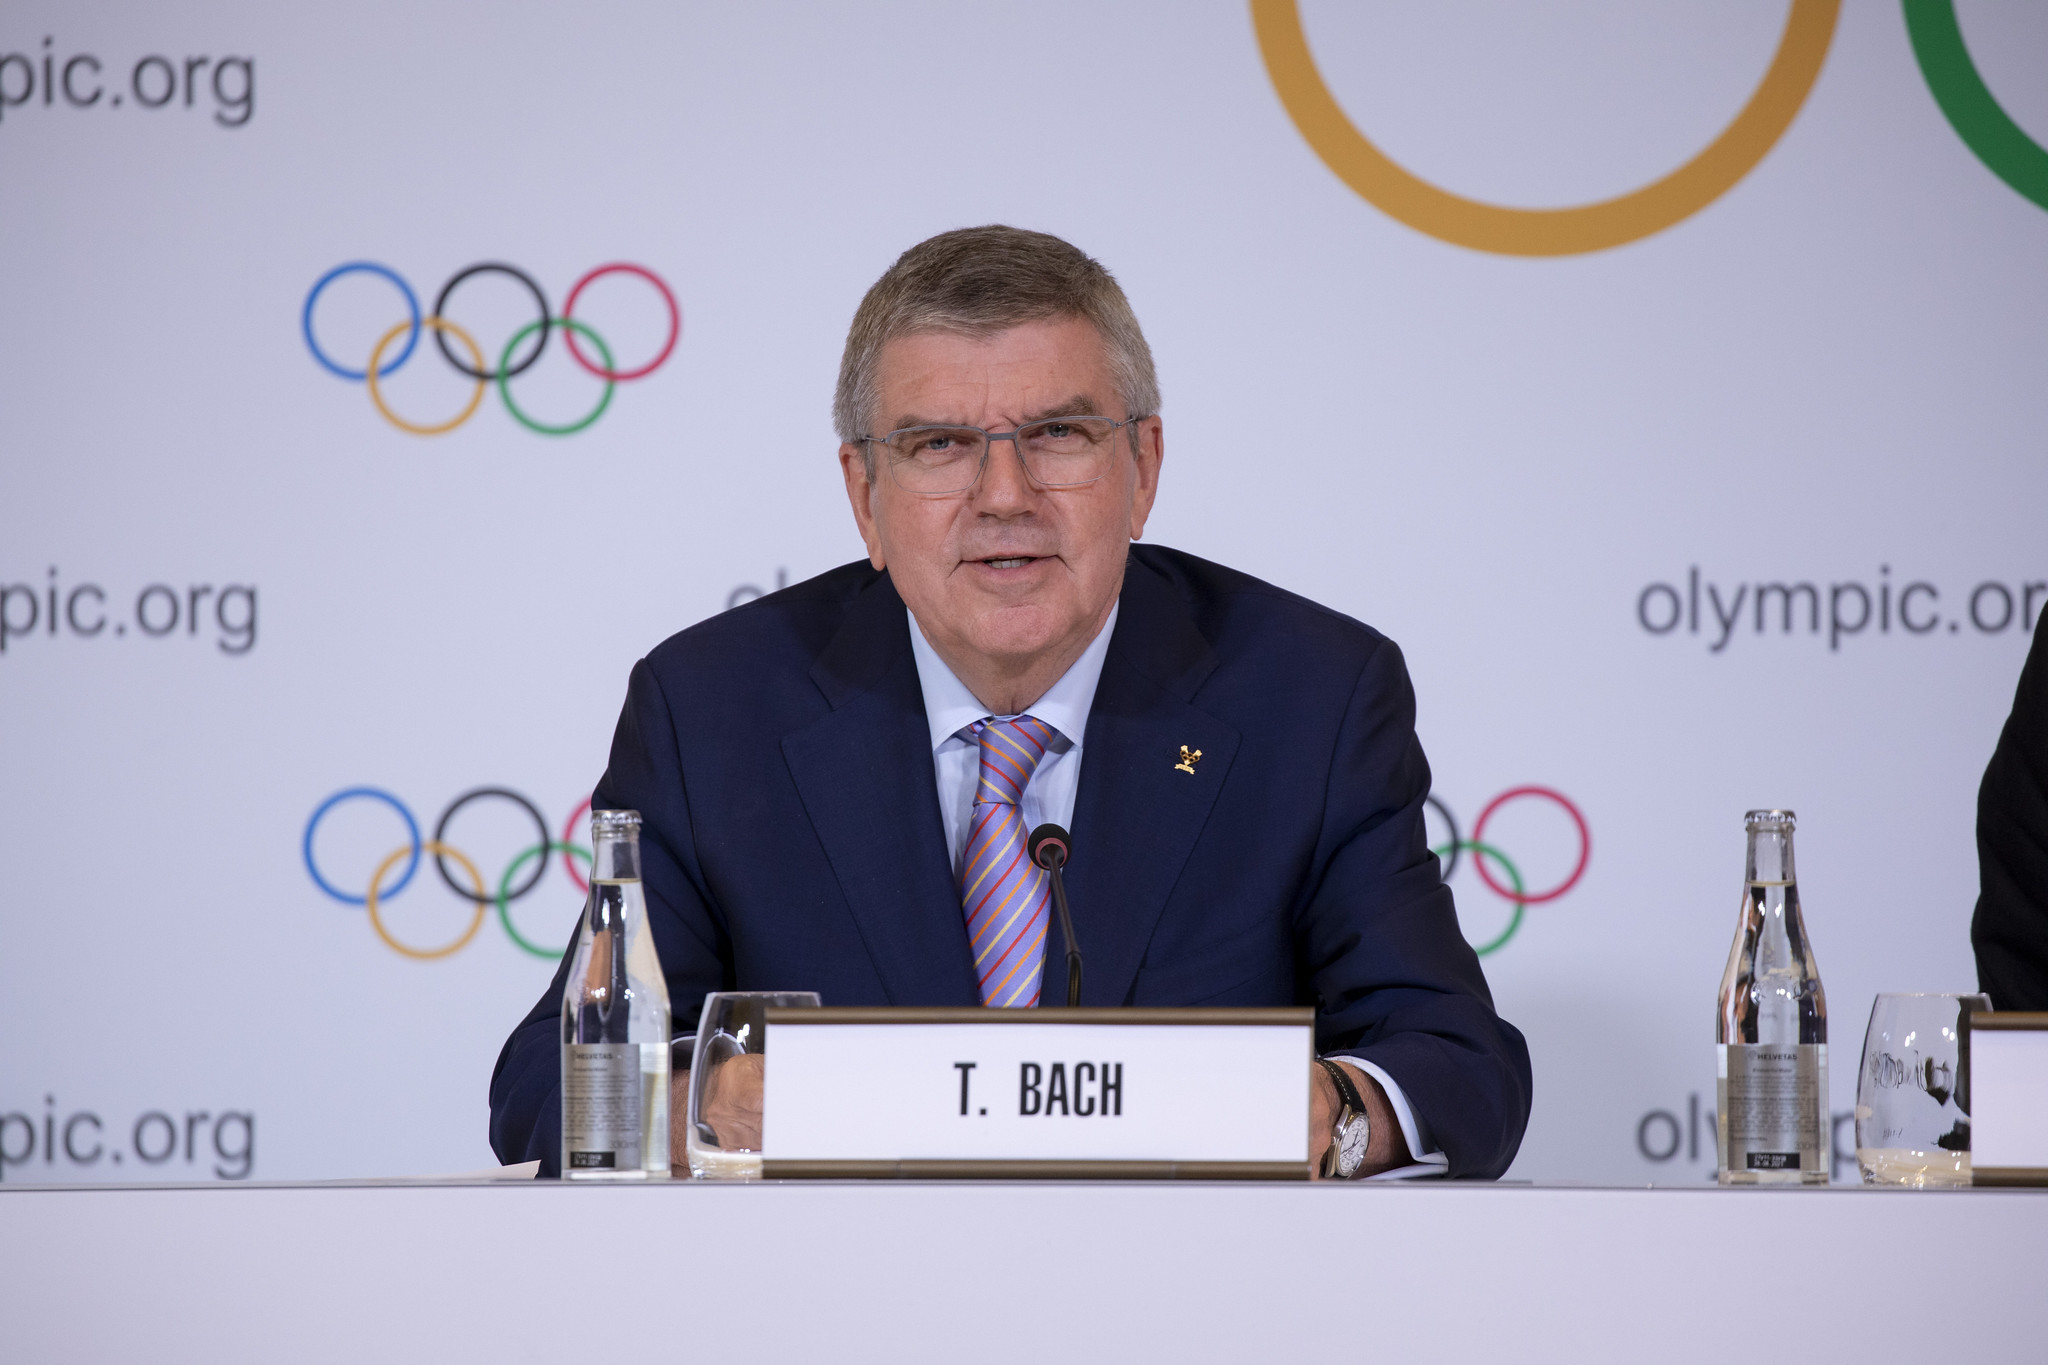 IOC President Bach confirms Tokyo 2020 to send heat countermeasures survey to International Federations and NOCs